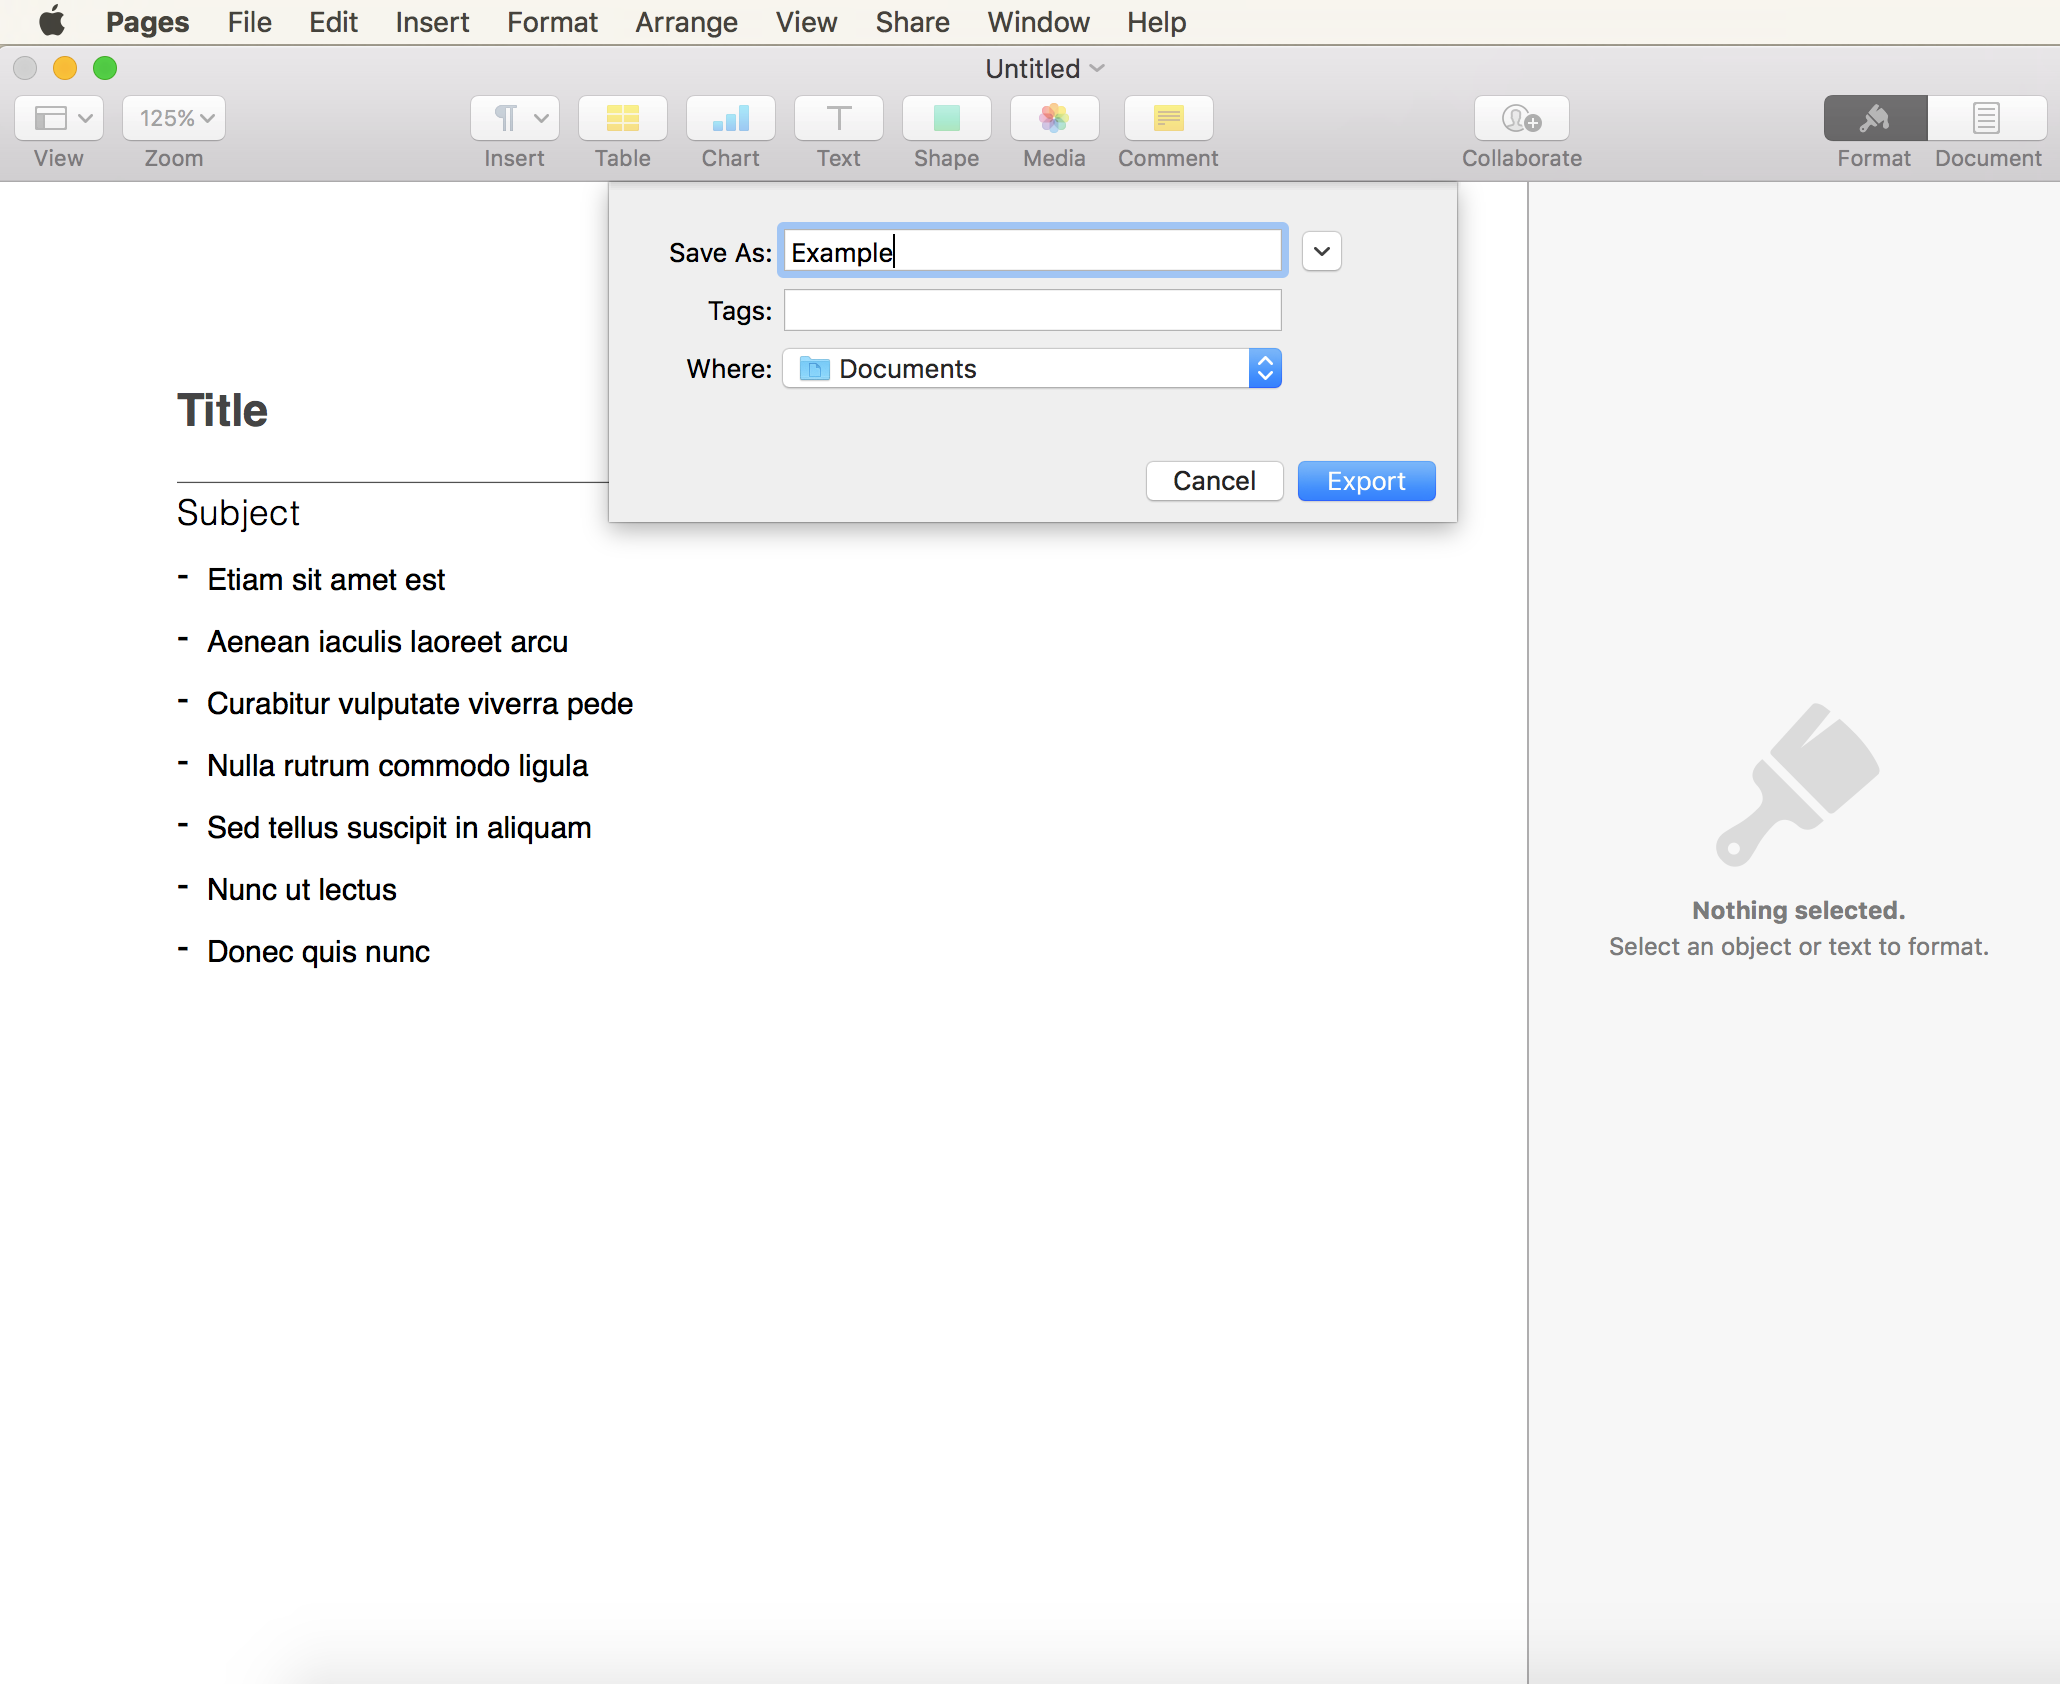 How To Embed A Youtube Video Into A Powerpoint Presentation Mac By Peter  Abelard Learn How To Convert Pages To Word And Manage Your Documents On Mac  With